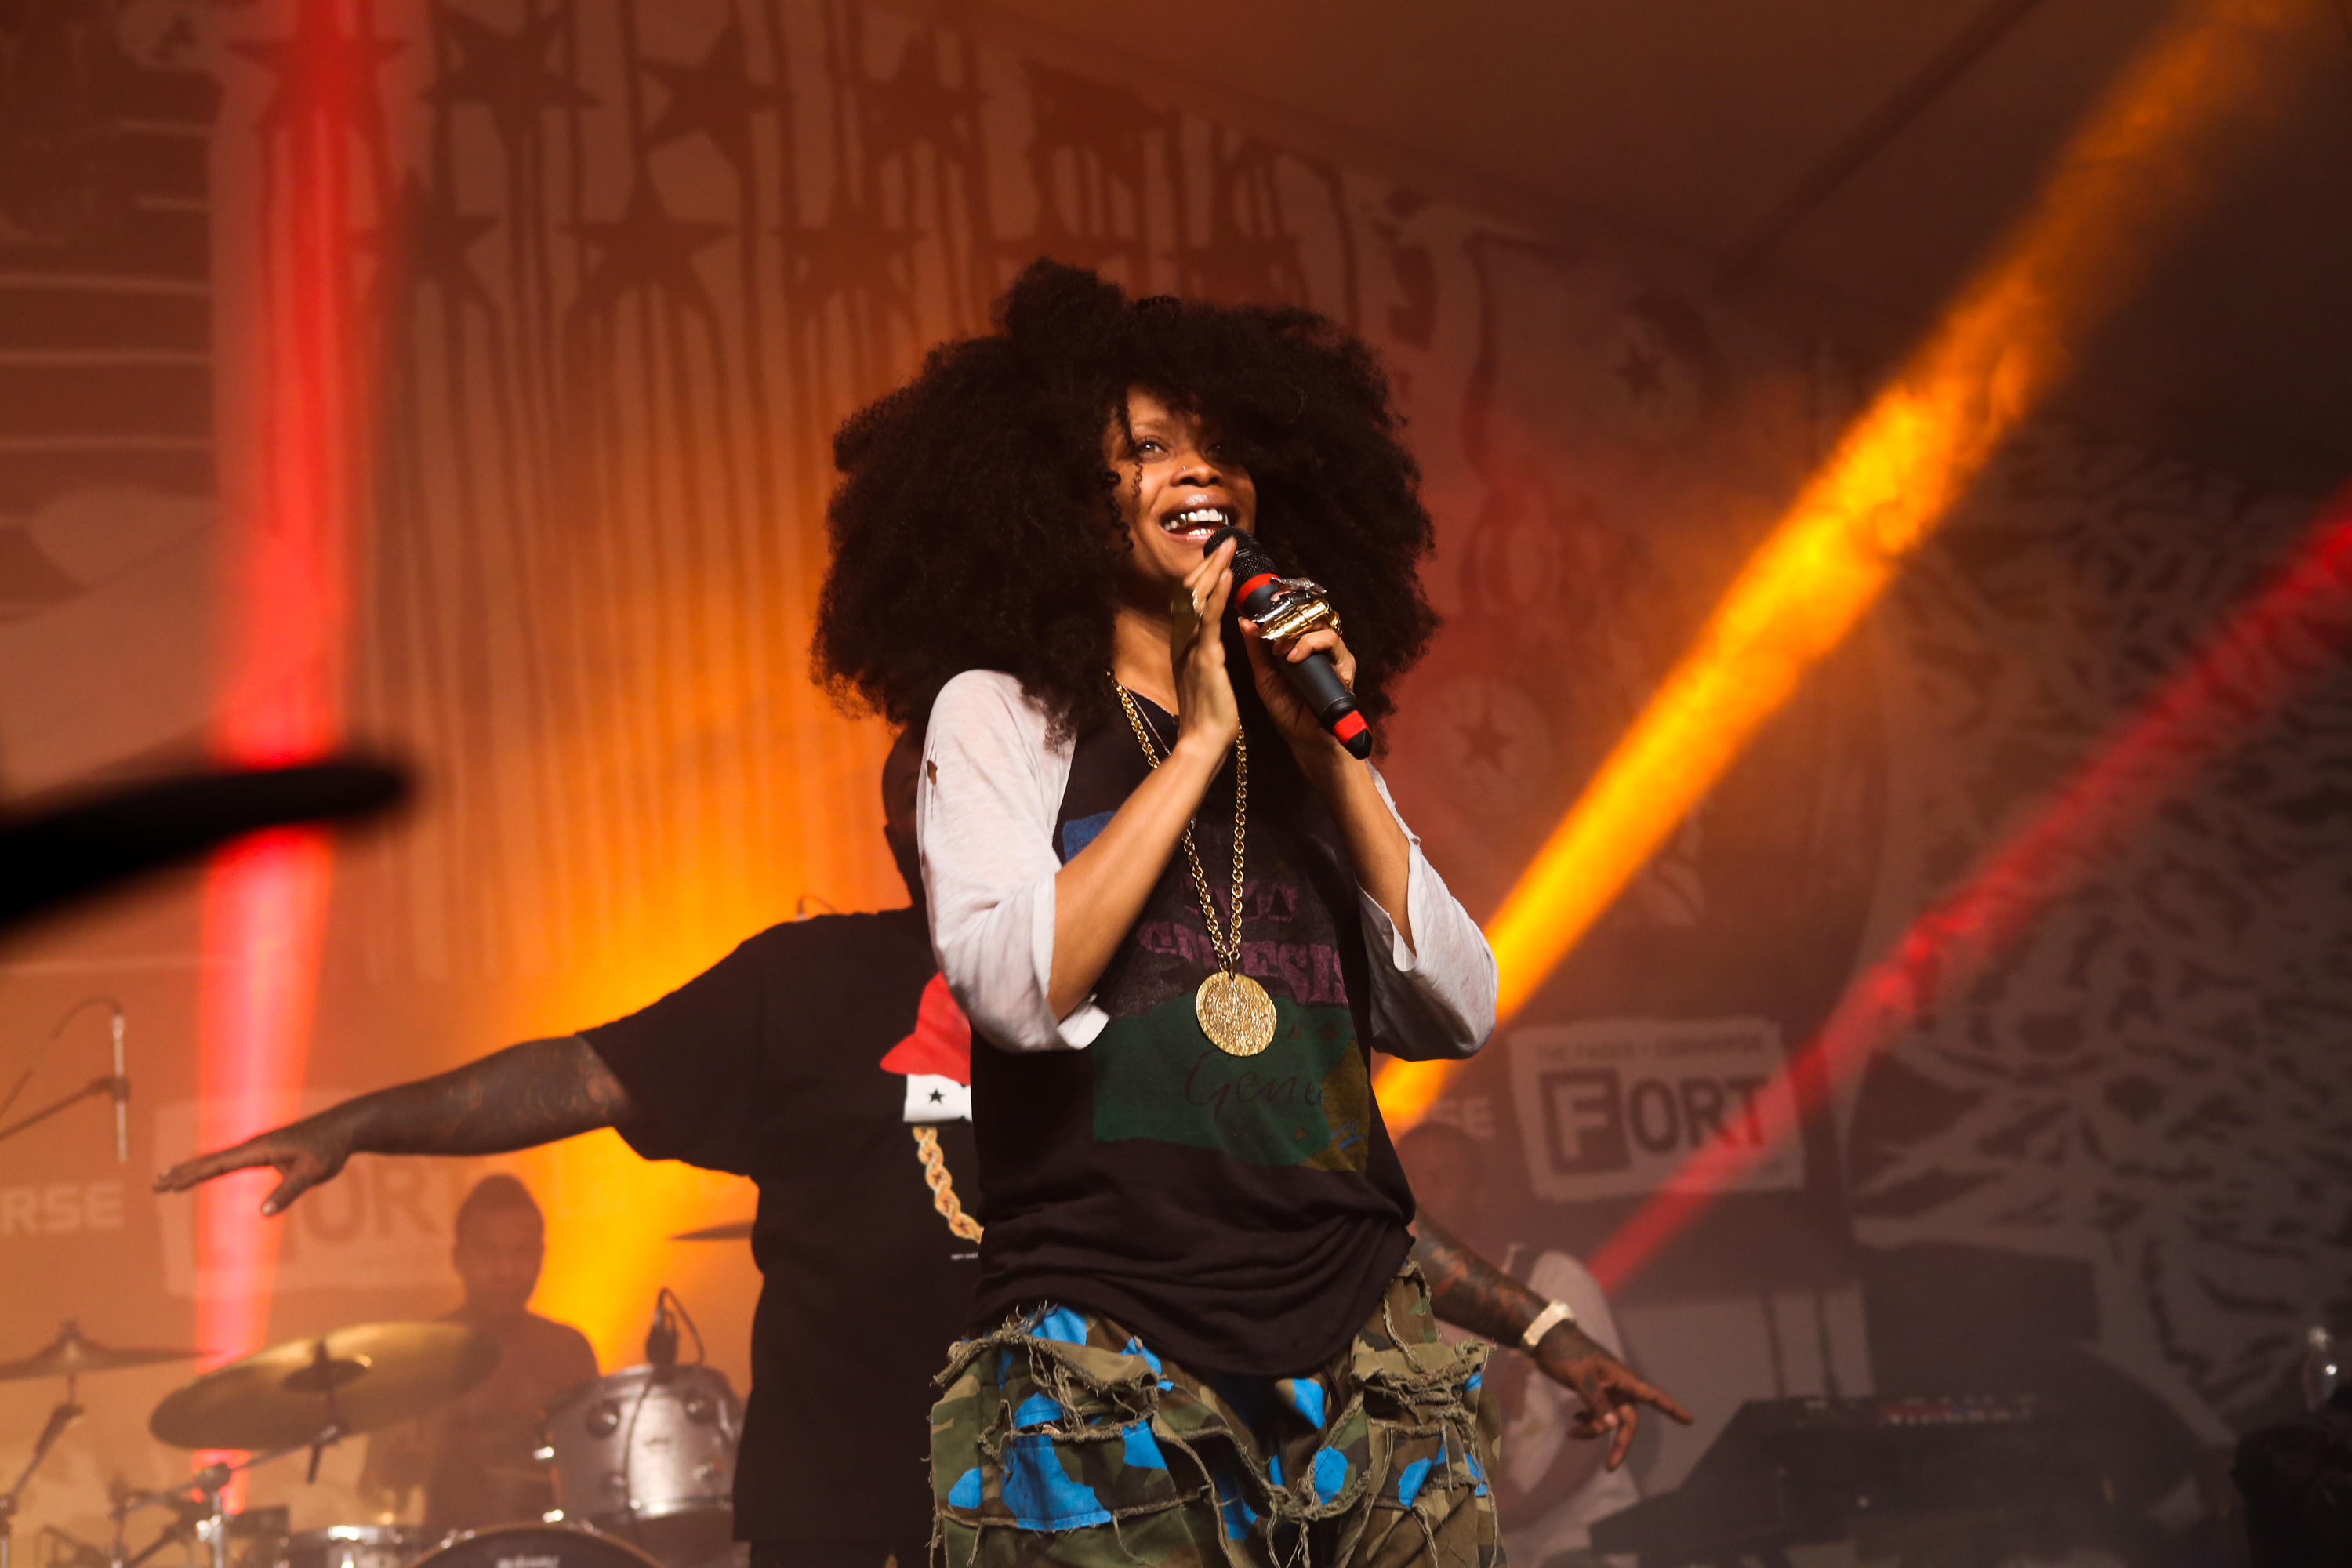 Erykah Badu performs onstage at The Fader Fort presented by Converse during SXSW on March 15, 2014 in Austin, Texas.